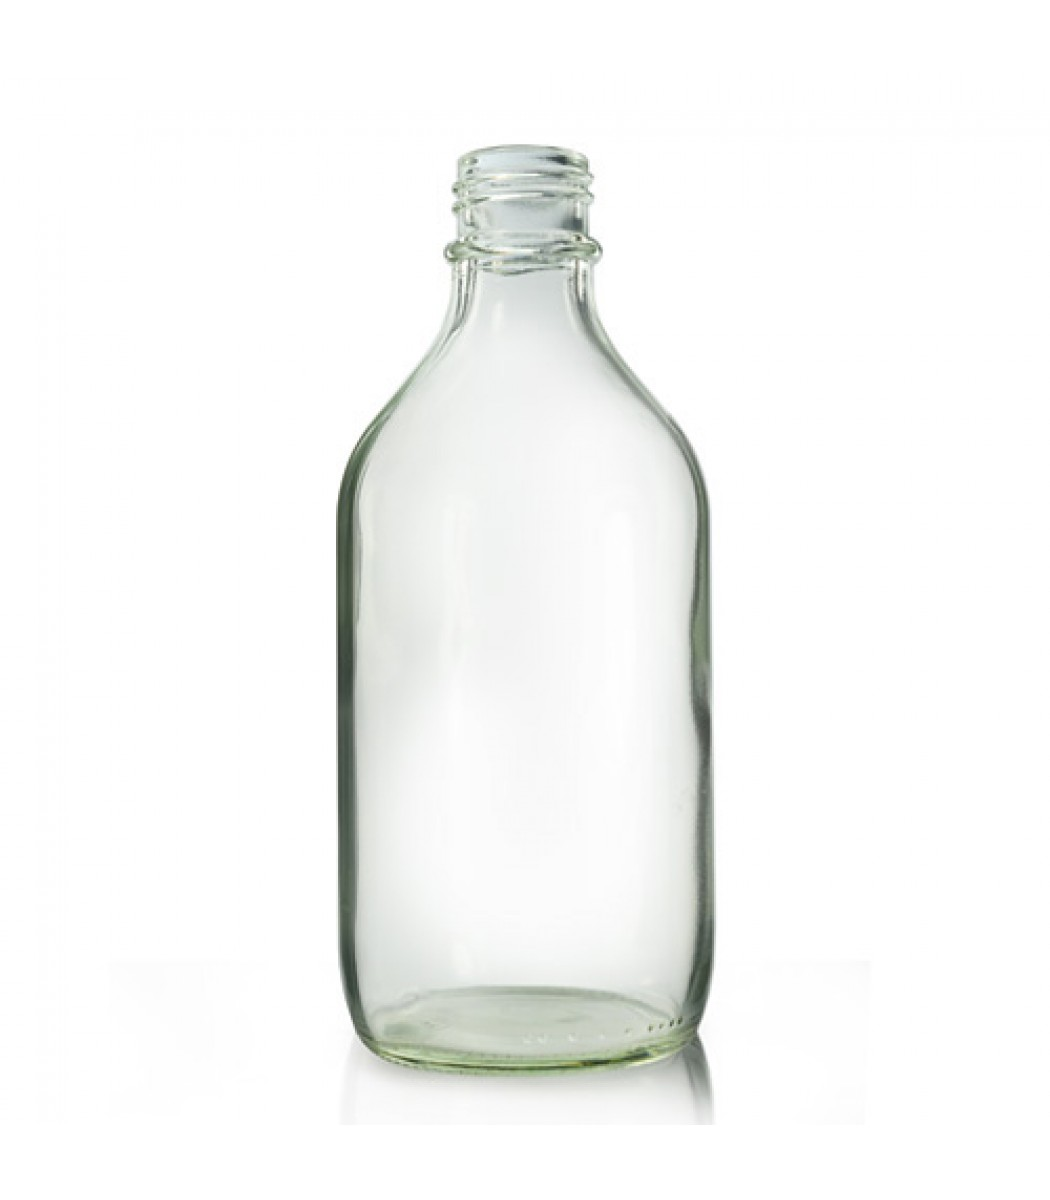 Ml Clear Glass Bottle